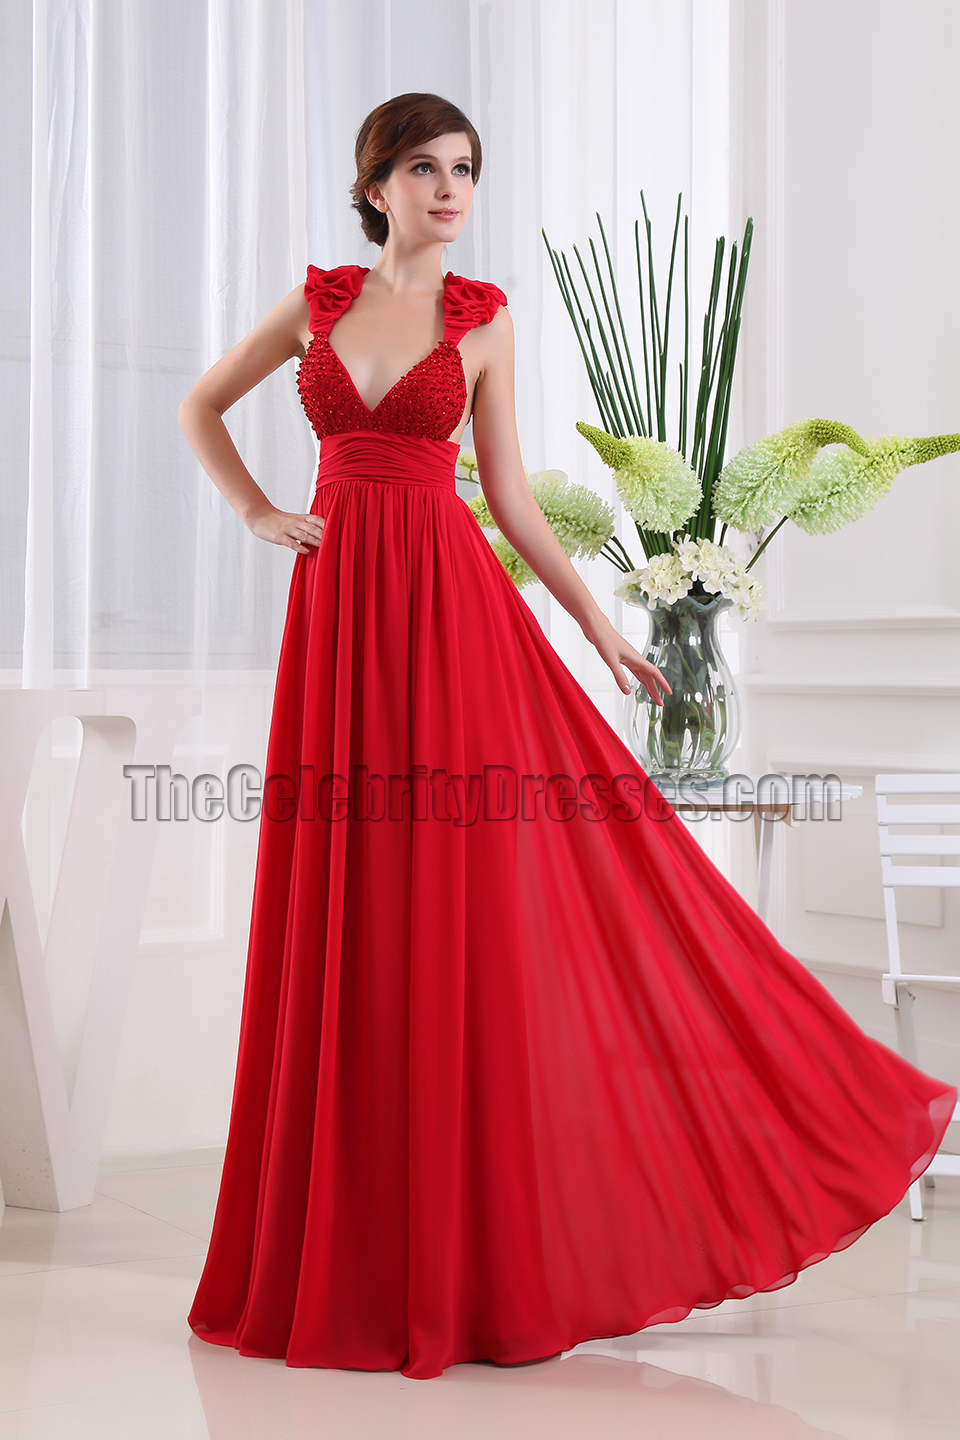 Sexy red dress evening gown and